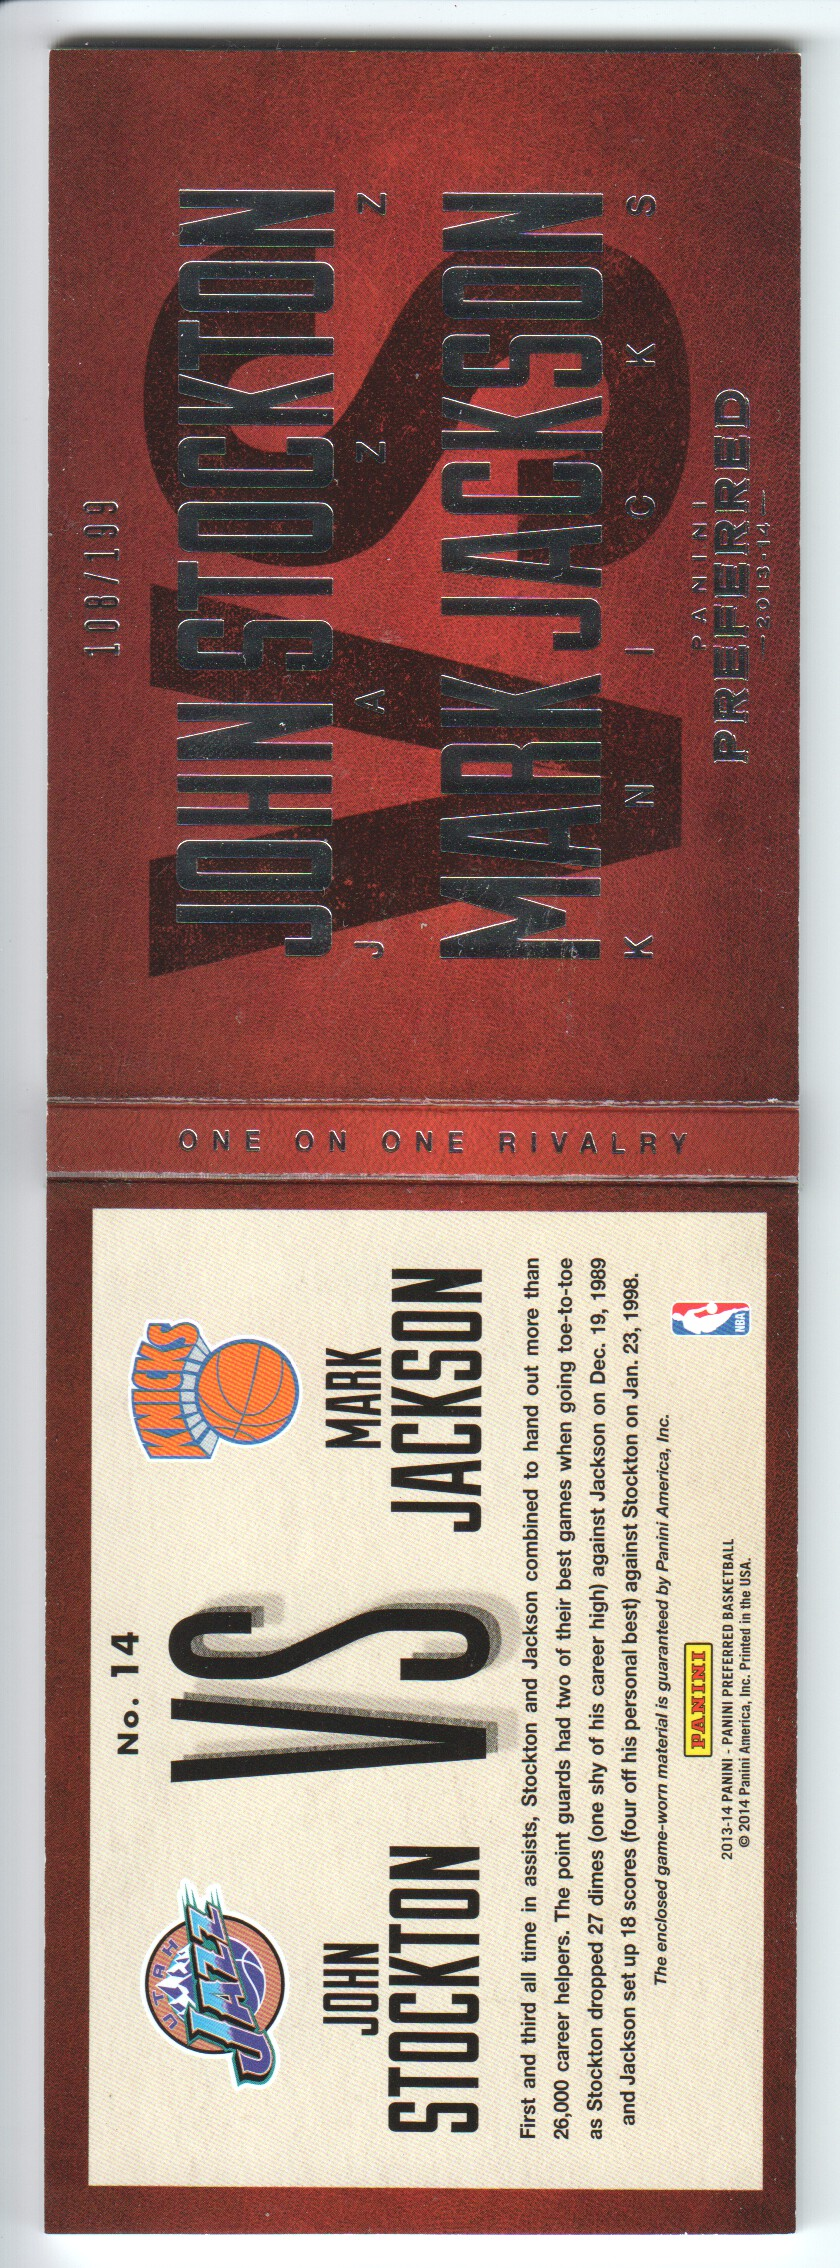 2013-14 Panini Preferred One on One Rivalry Memorabilia #14 Mark Jackson/John Stockton/199